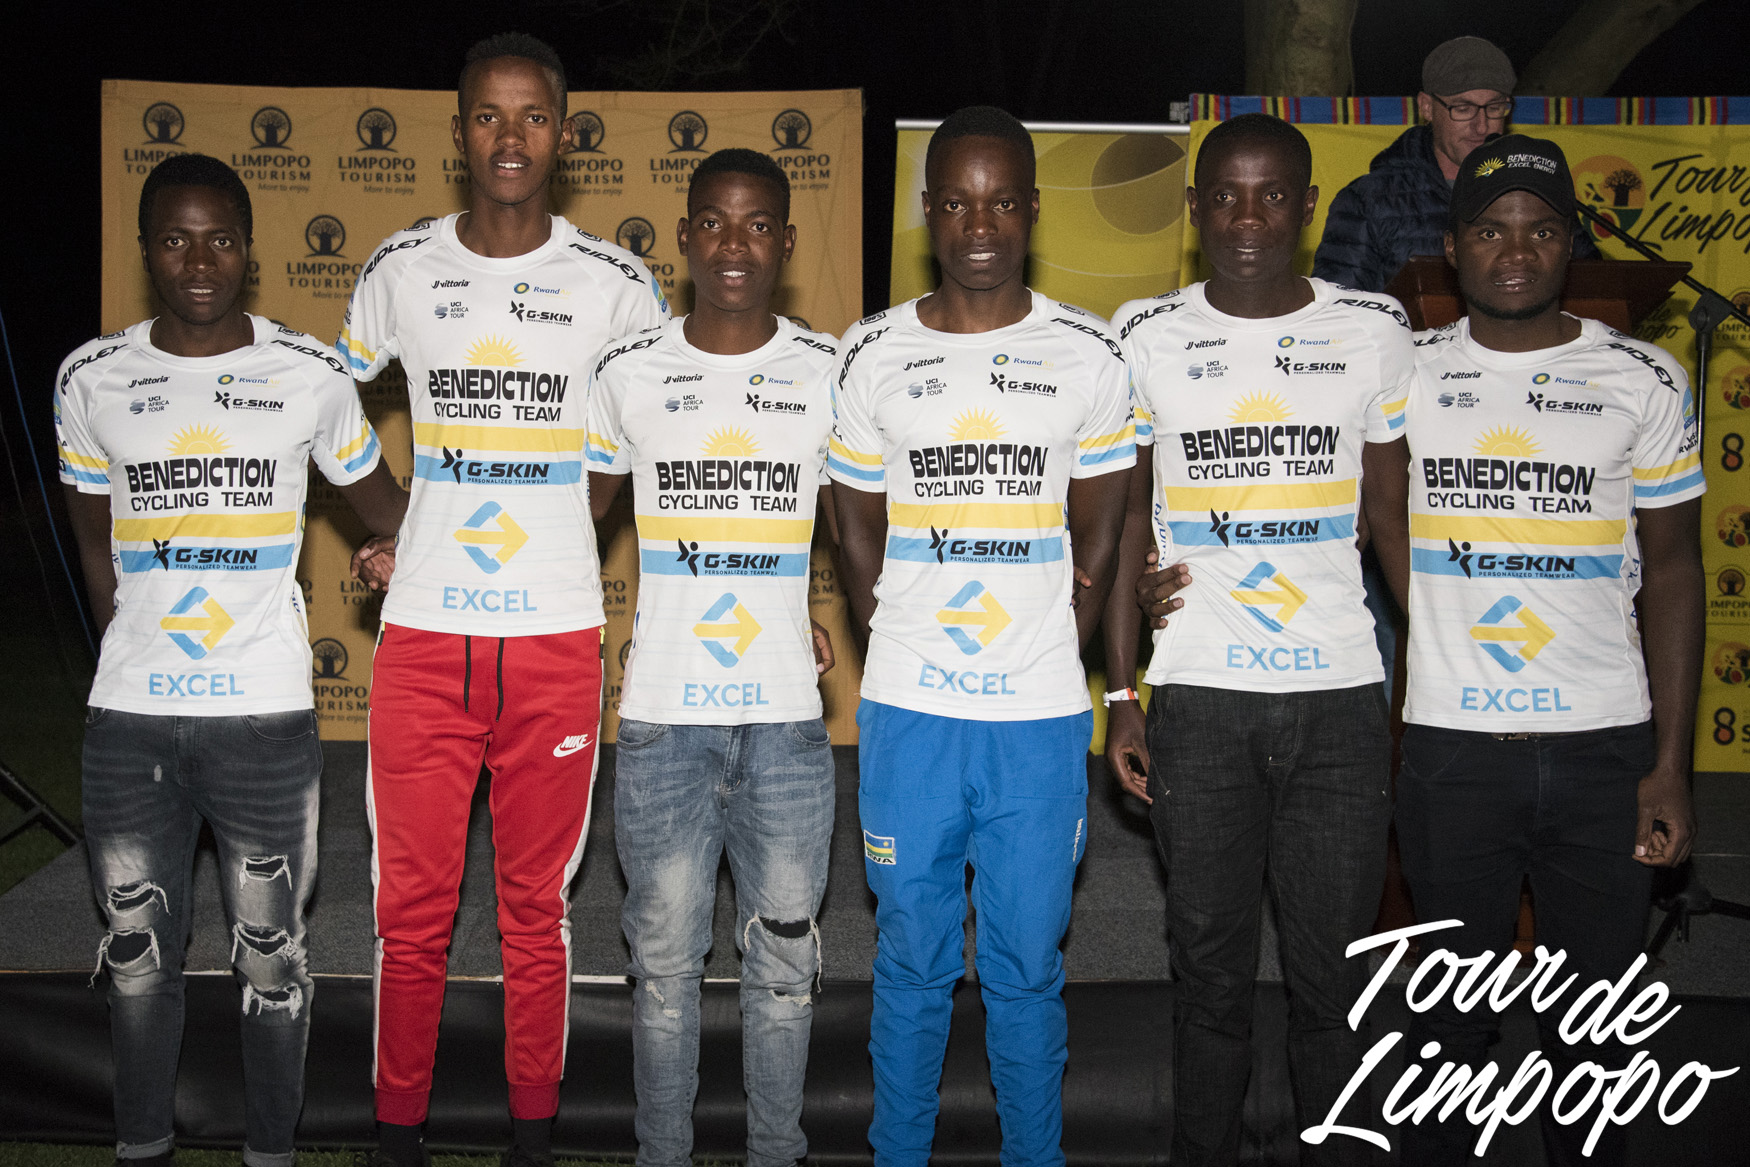 Rwanda's first UCI Continental team - Benediction Cycling Team - will be tackling the 2019 edition of the Tour de Limpopo (UCI 2.2) from 14-18 May © TourdeLimpopo/Boogs Photography